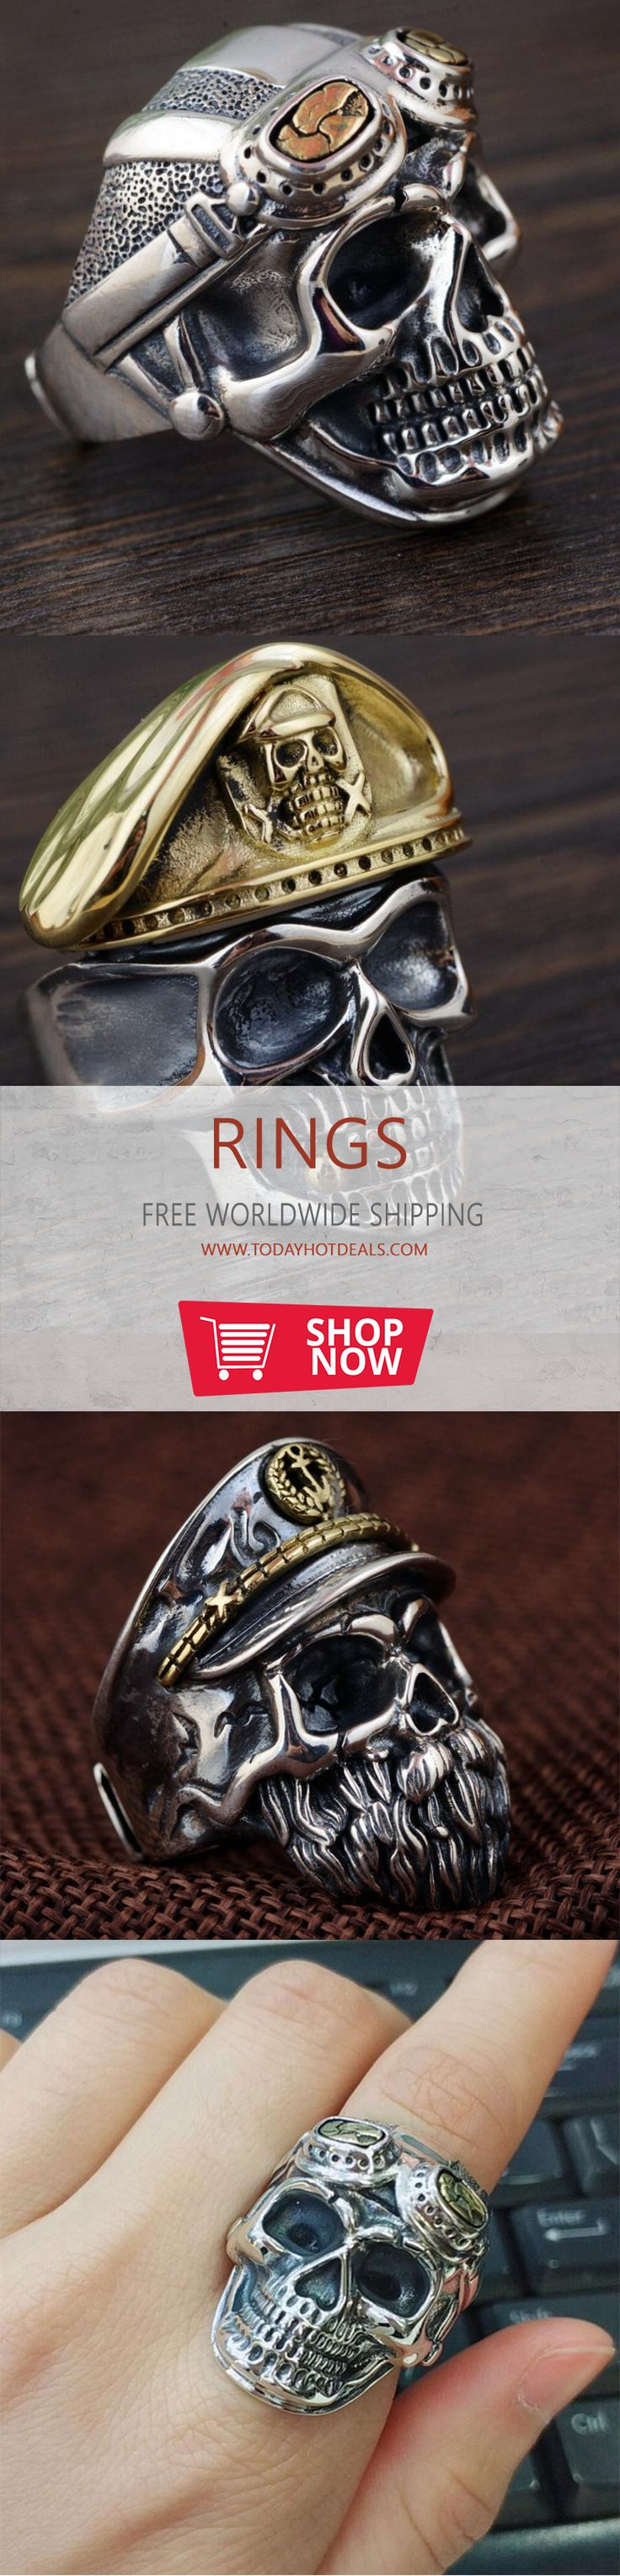 197 Best Smykker Images On Pinterest Male Rings Men And Hoc Store Titanium Cufflinks Set 09 925 Sterling Silver Soldier Anniversary Heavy Skull Ring Condition New Handmade In Perfect Finished Material Highest Quality